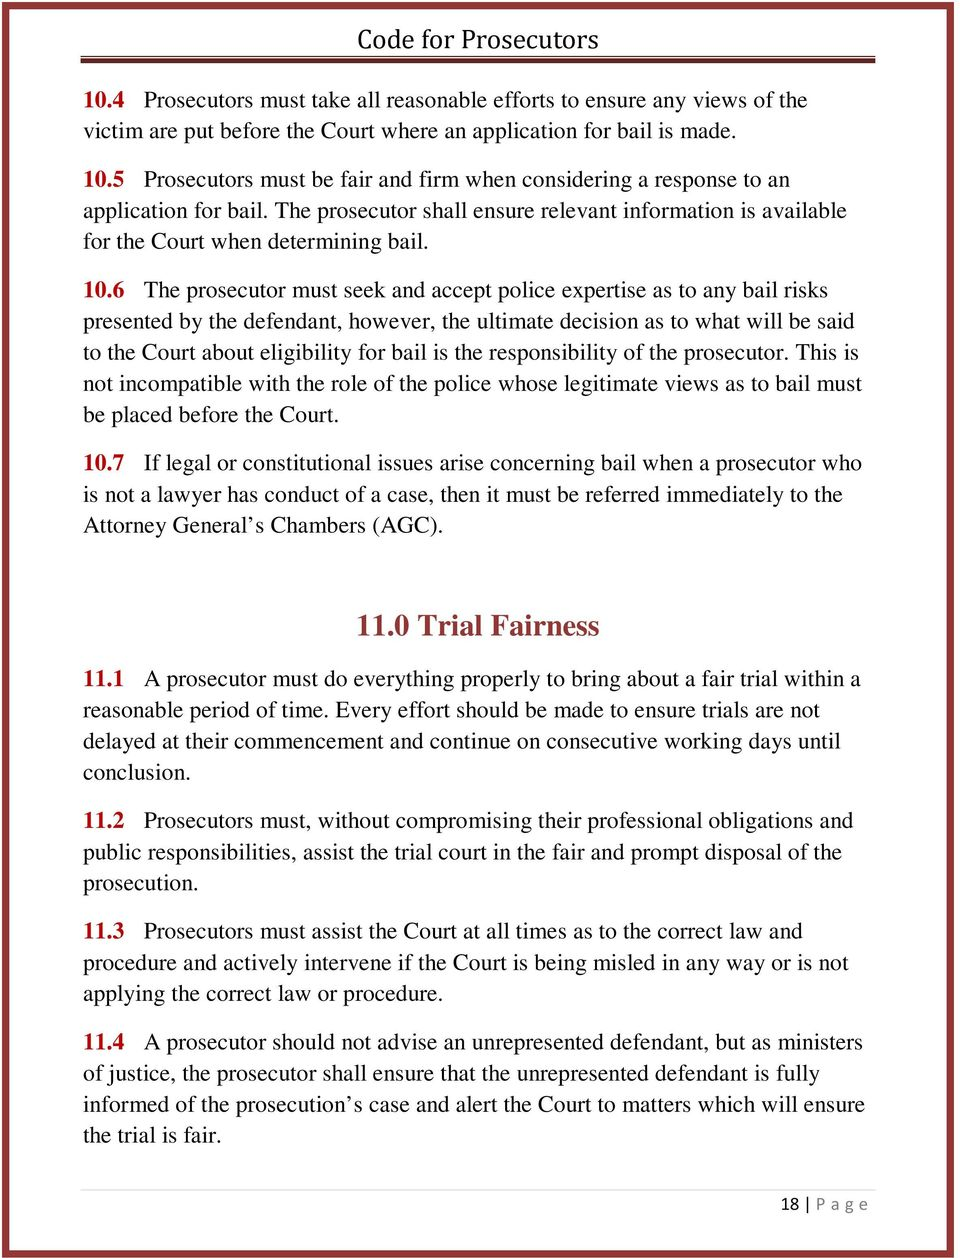 6 The prosecutor must seek and accept police expertise as to any bail risks presented by the defendant, however, the ultimate decision as to what will be said to the Court about eligibility for bail